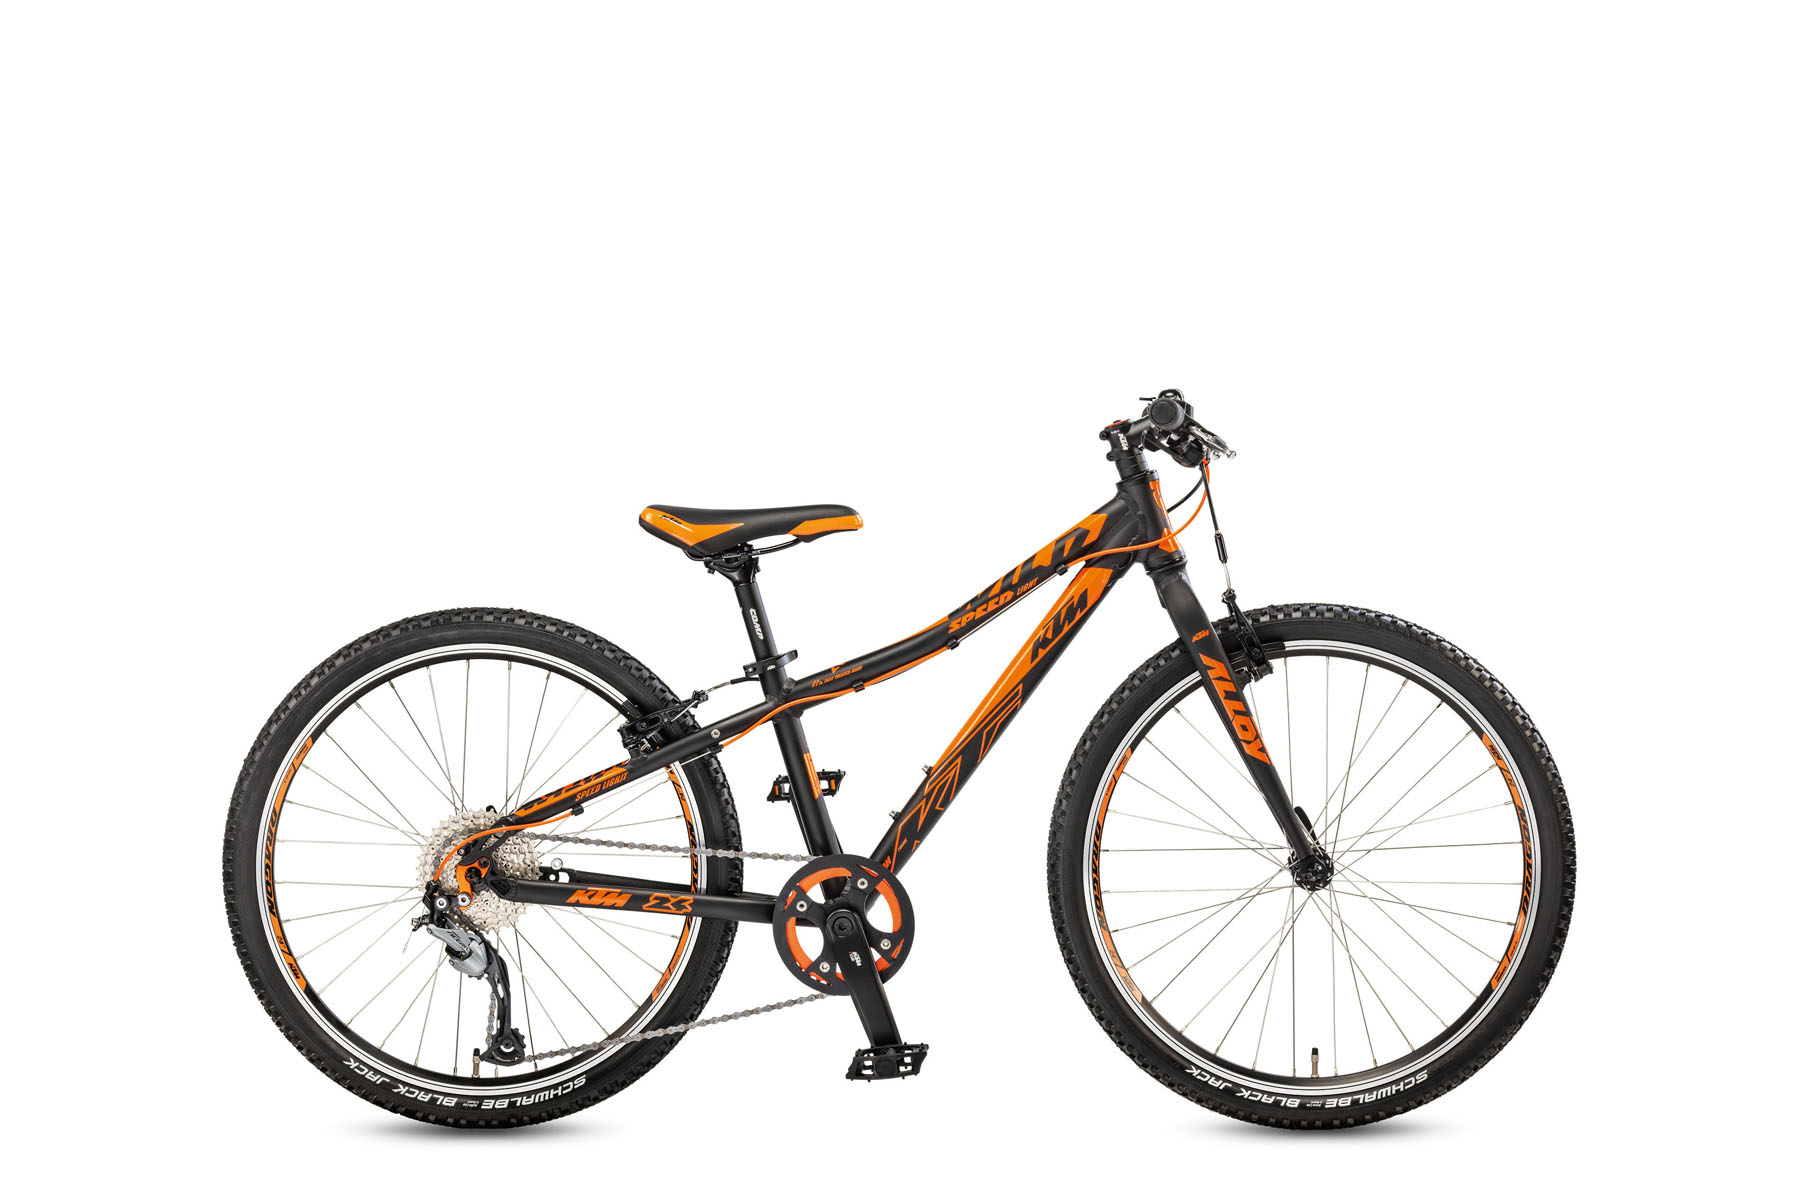 Bicicleta KTM Copii WILD Speed 24.9 Light    9s Acera 2017